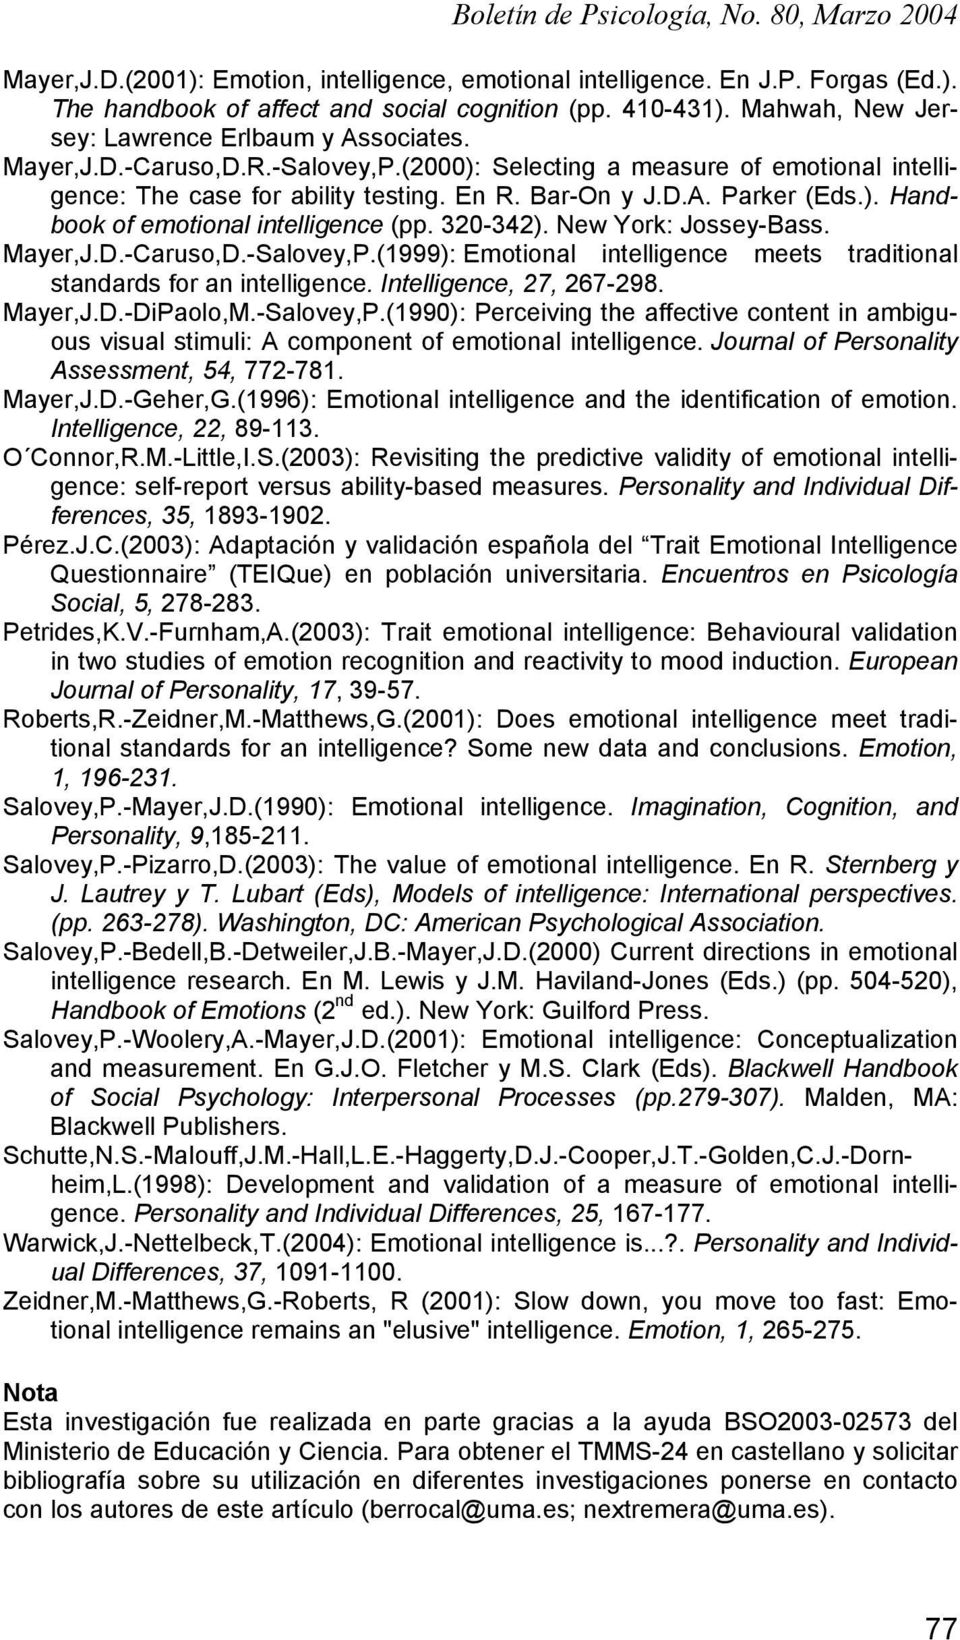 320-342). New York: Jossey-Bass. Mayer,J.D.-Caruso,D.-Salovey,P.(1999): Emotional intelligence meets traditional standards for an intelligence. Intelligence, 27, 267-298. Mayer,J.D.-DiPaolo,M.